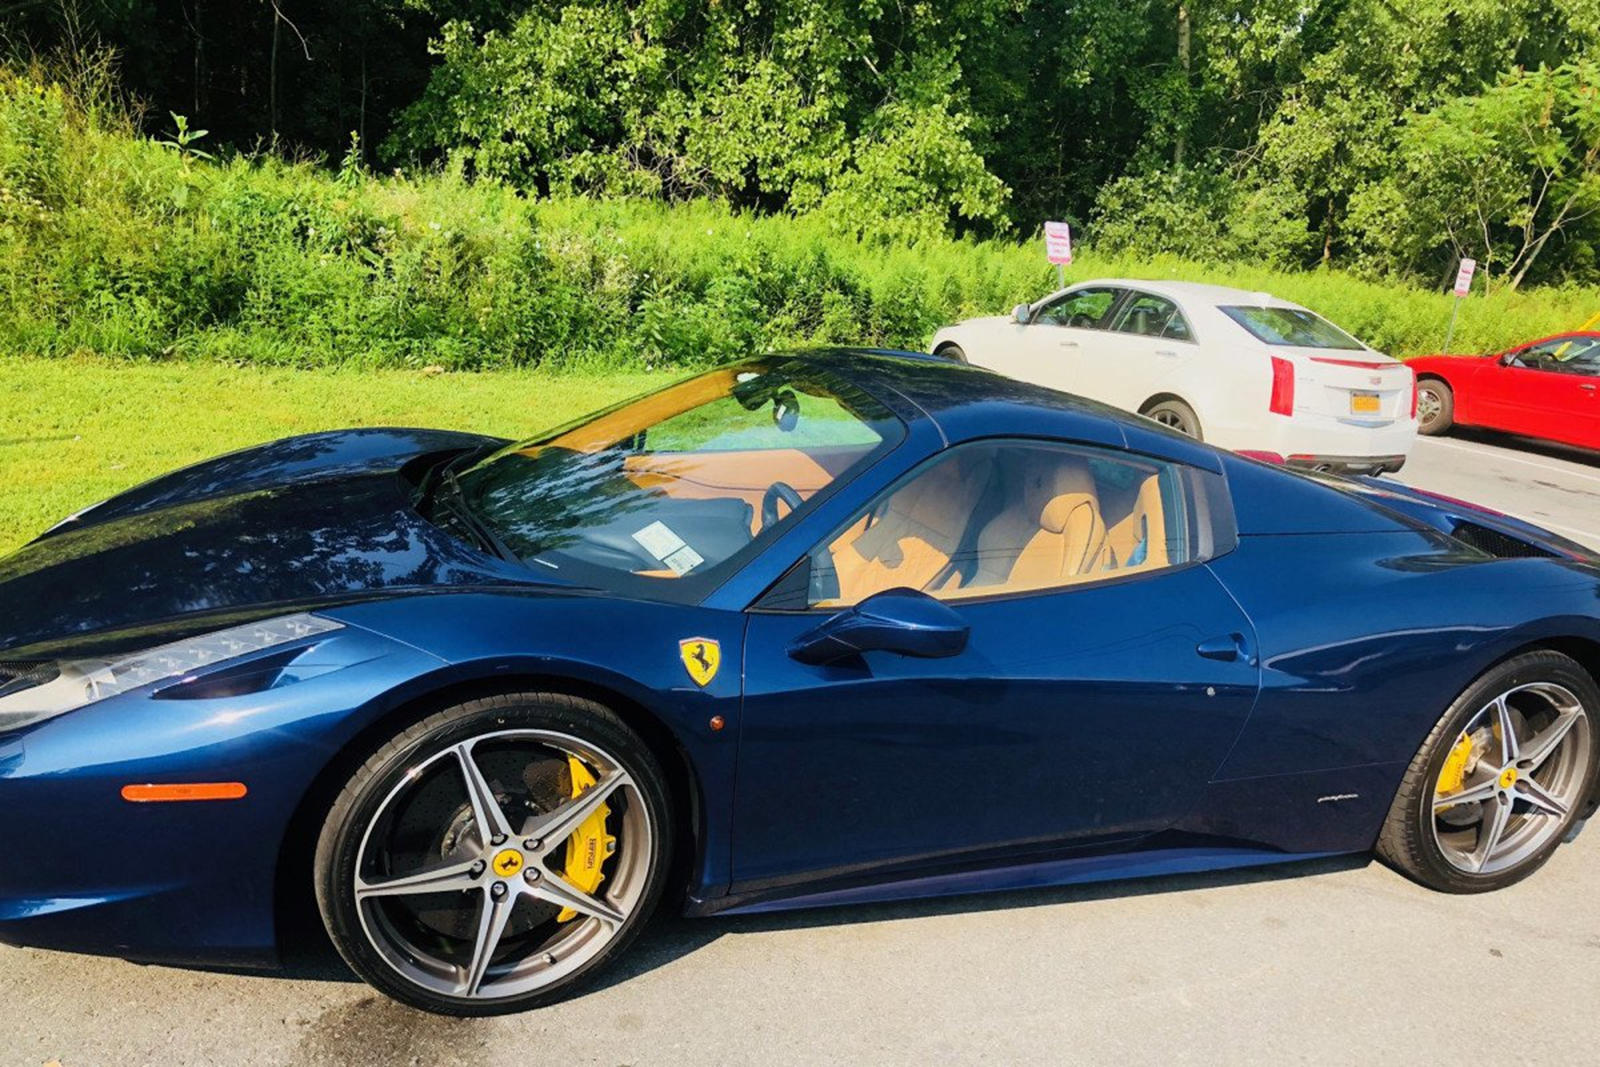 Ferrari 458 Spider Loses 140 000 In Value After 4 Hours In Garage Carbuzz